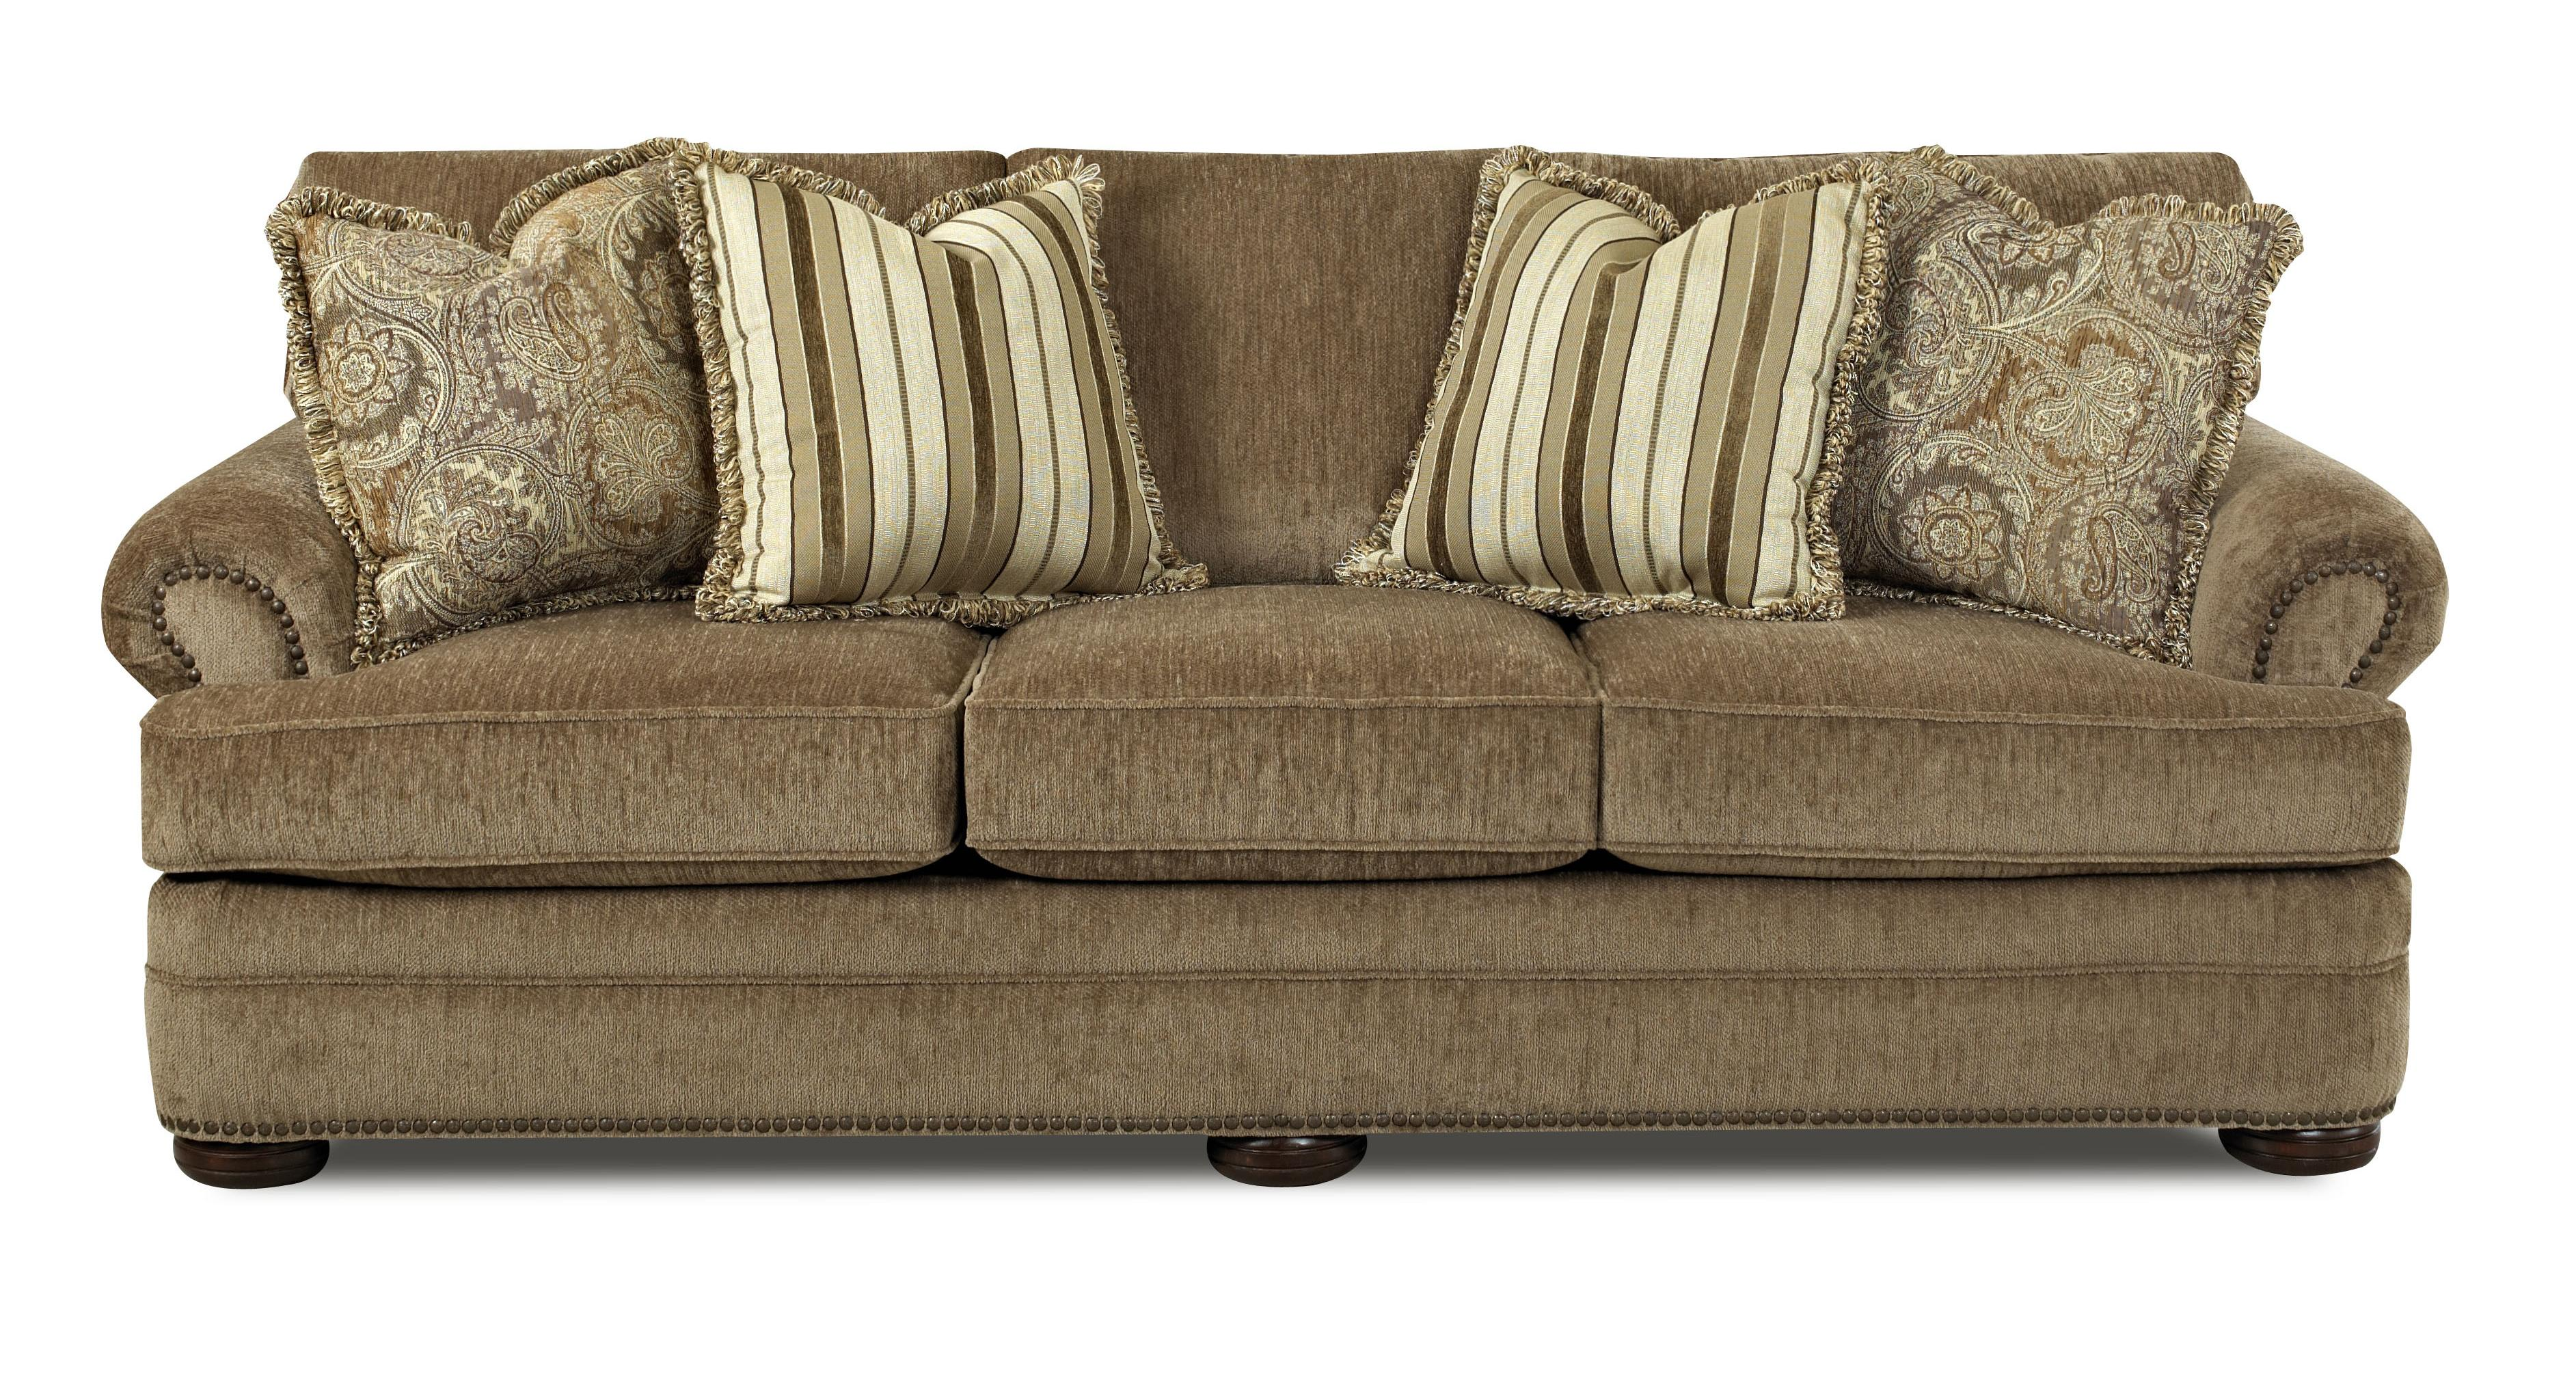 Klaussner Tolbert K90810F S Traditional Sofa With Rolled